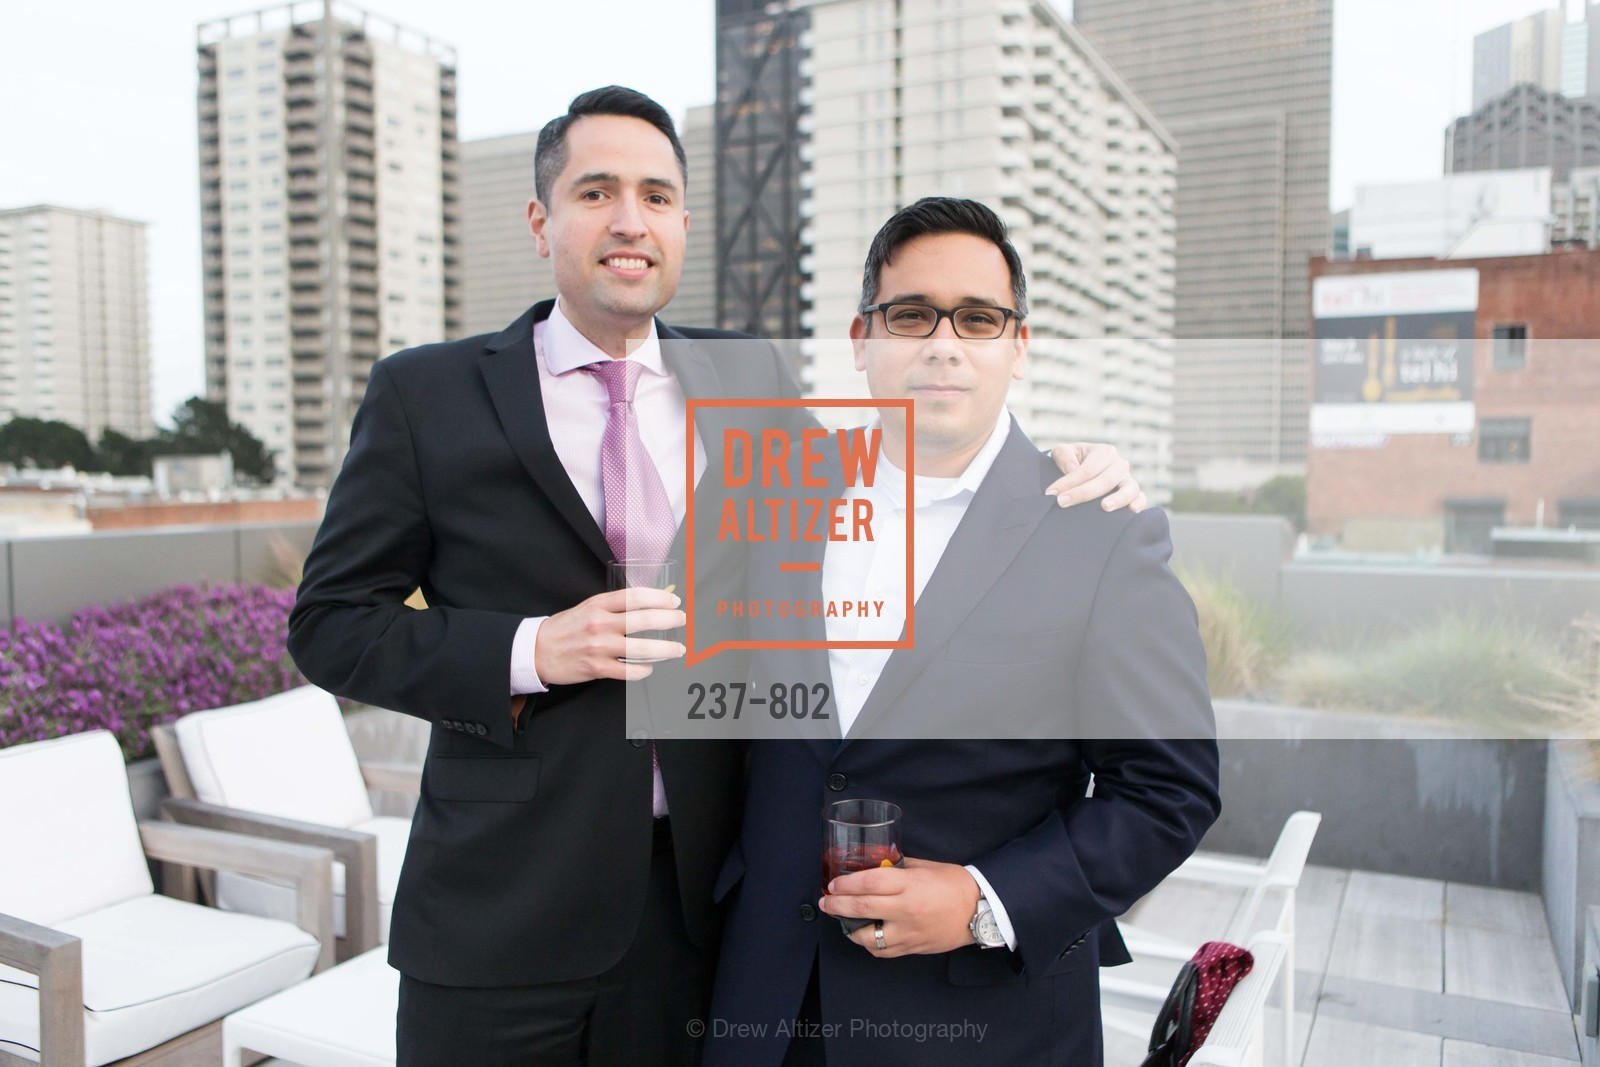 Aaron Barrera, Gonzalo Martinez, MR PORTER Celebrate The San Francisco Issue of The Journal, US, April 23rd, 2015,Drew Altizer, Drew Altizer Photography, full-service agency, private events, San Francisco photographer, photographer california